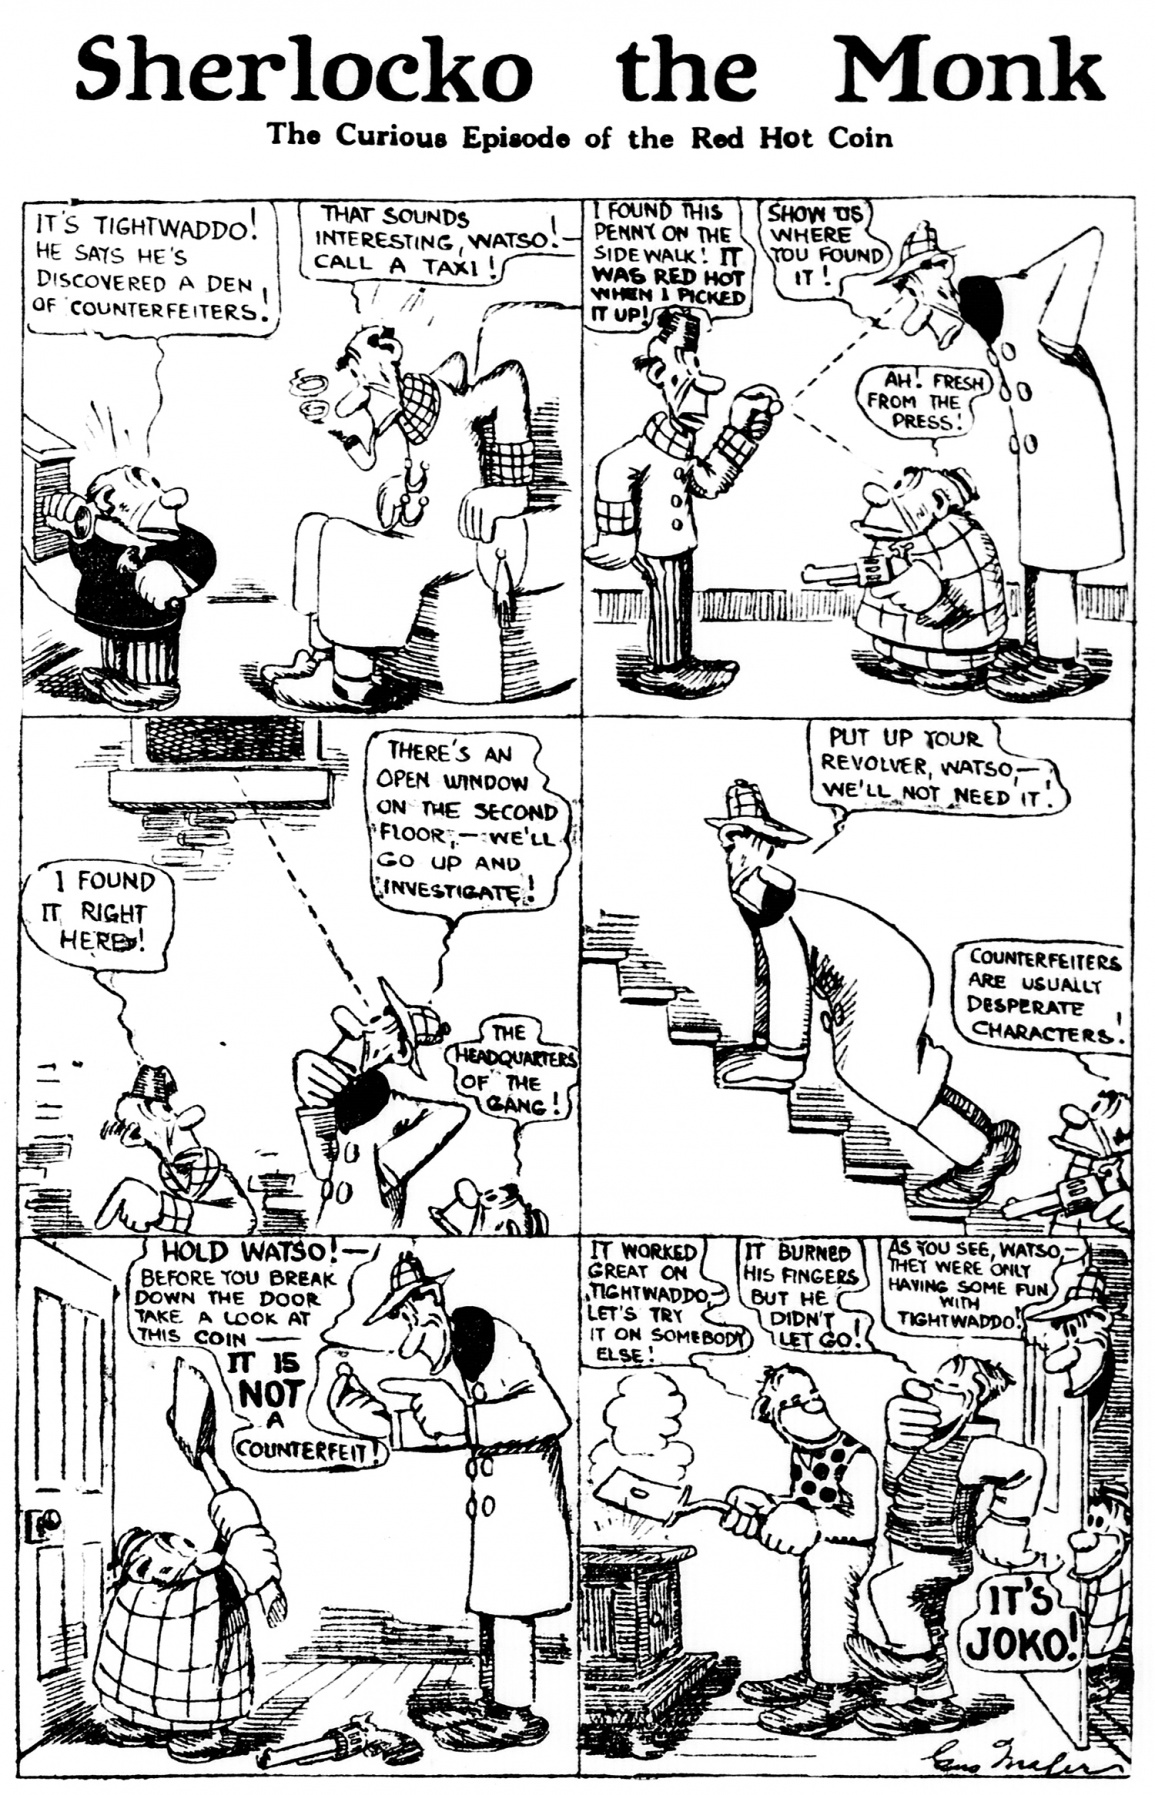 Sherlocko the Monk: The Curious Episode of the Red Hot Coin (May 2, 1911)